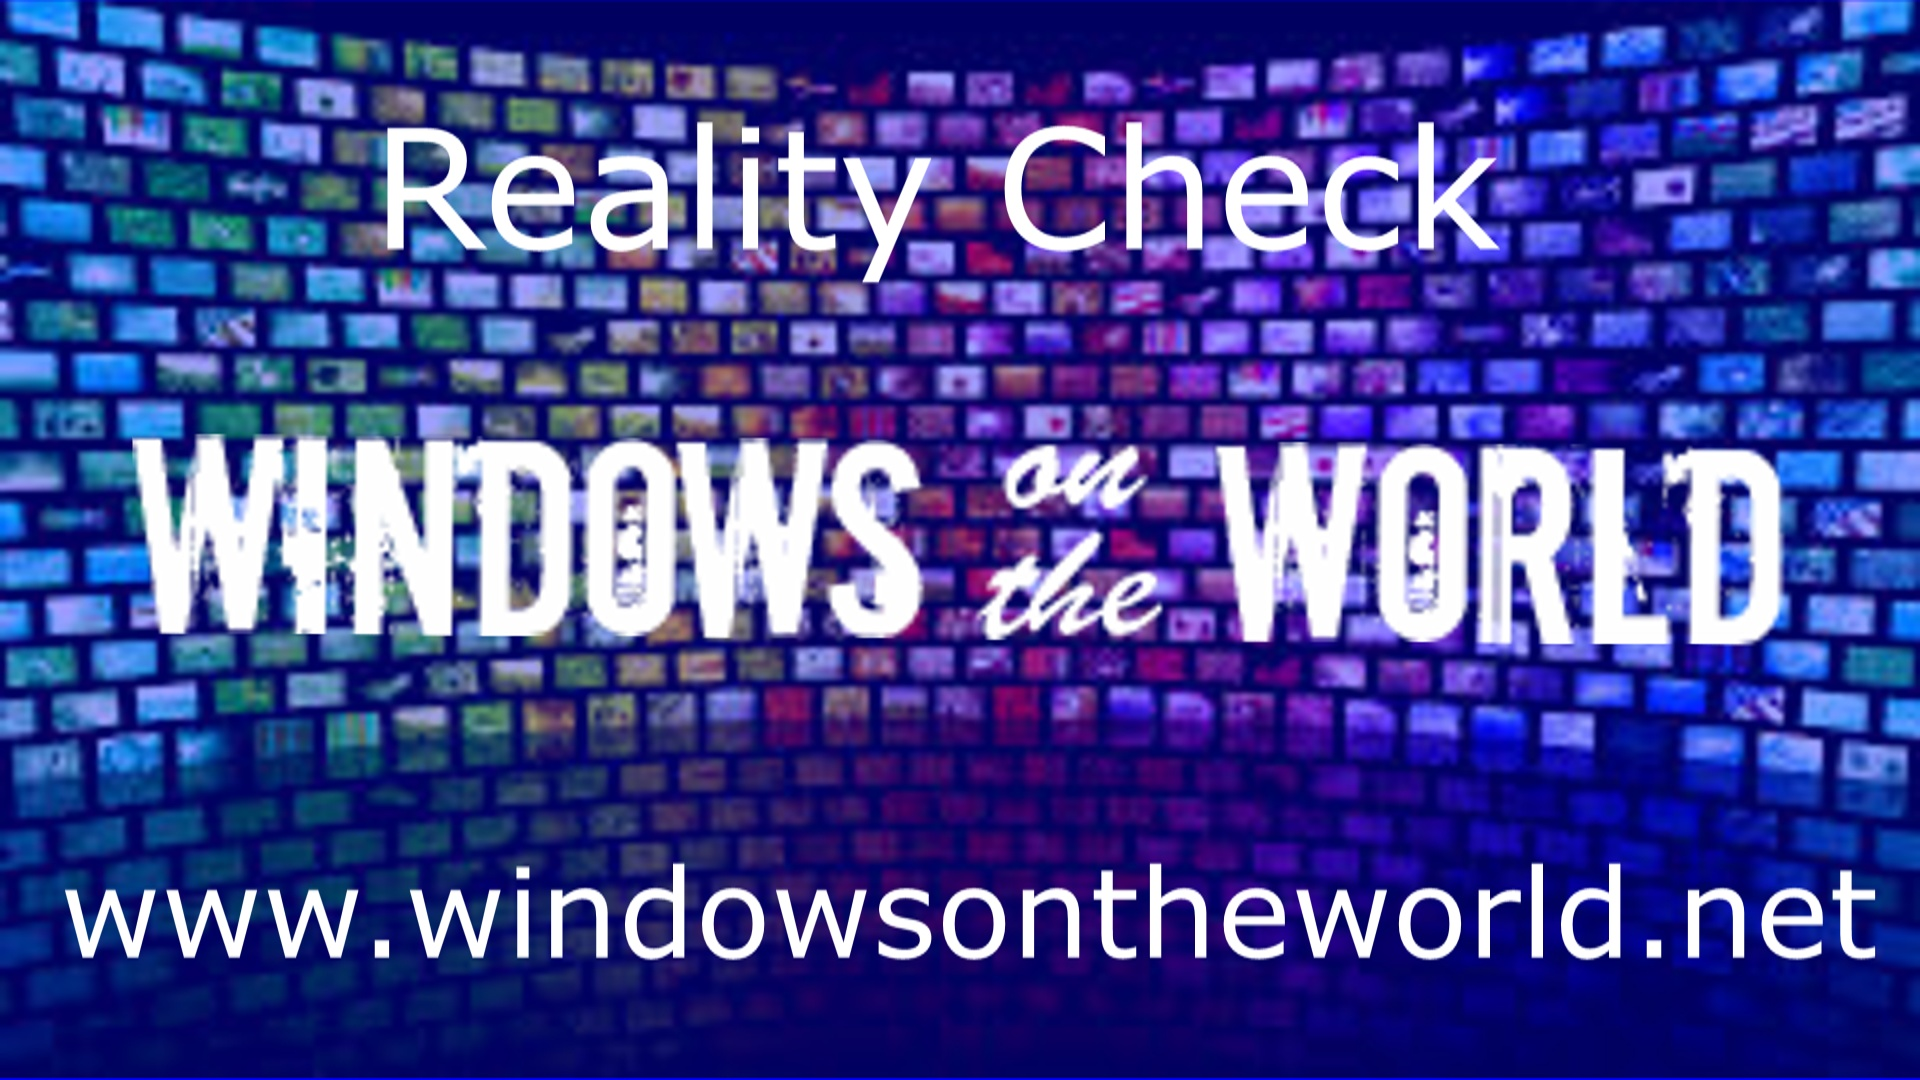 http;//www.windowsontheworld.net New show every Sunday. The 28 pages of documents release implicating Saudi Arabia in the 9 11 attacks are discussed along with US and Israeli involvement. In the studio Glen Isherwood of Citizens council of Australia and Dr. Nick Kollerstrom.